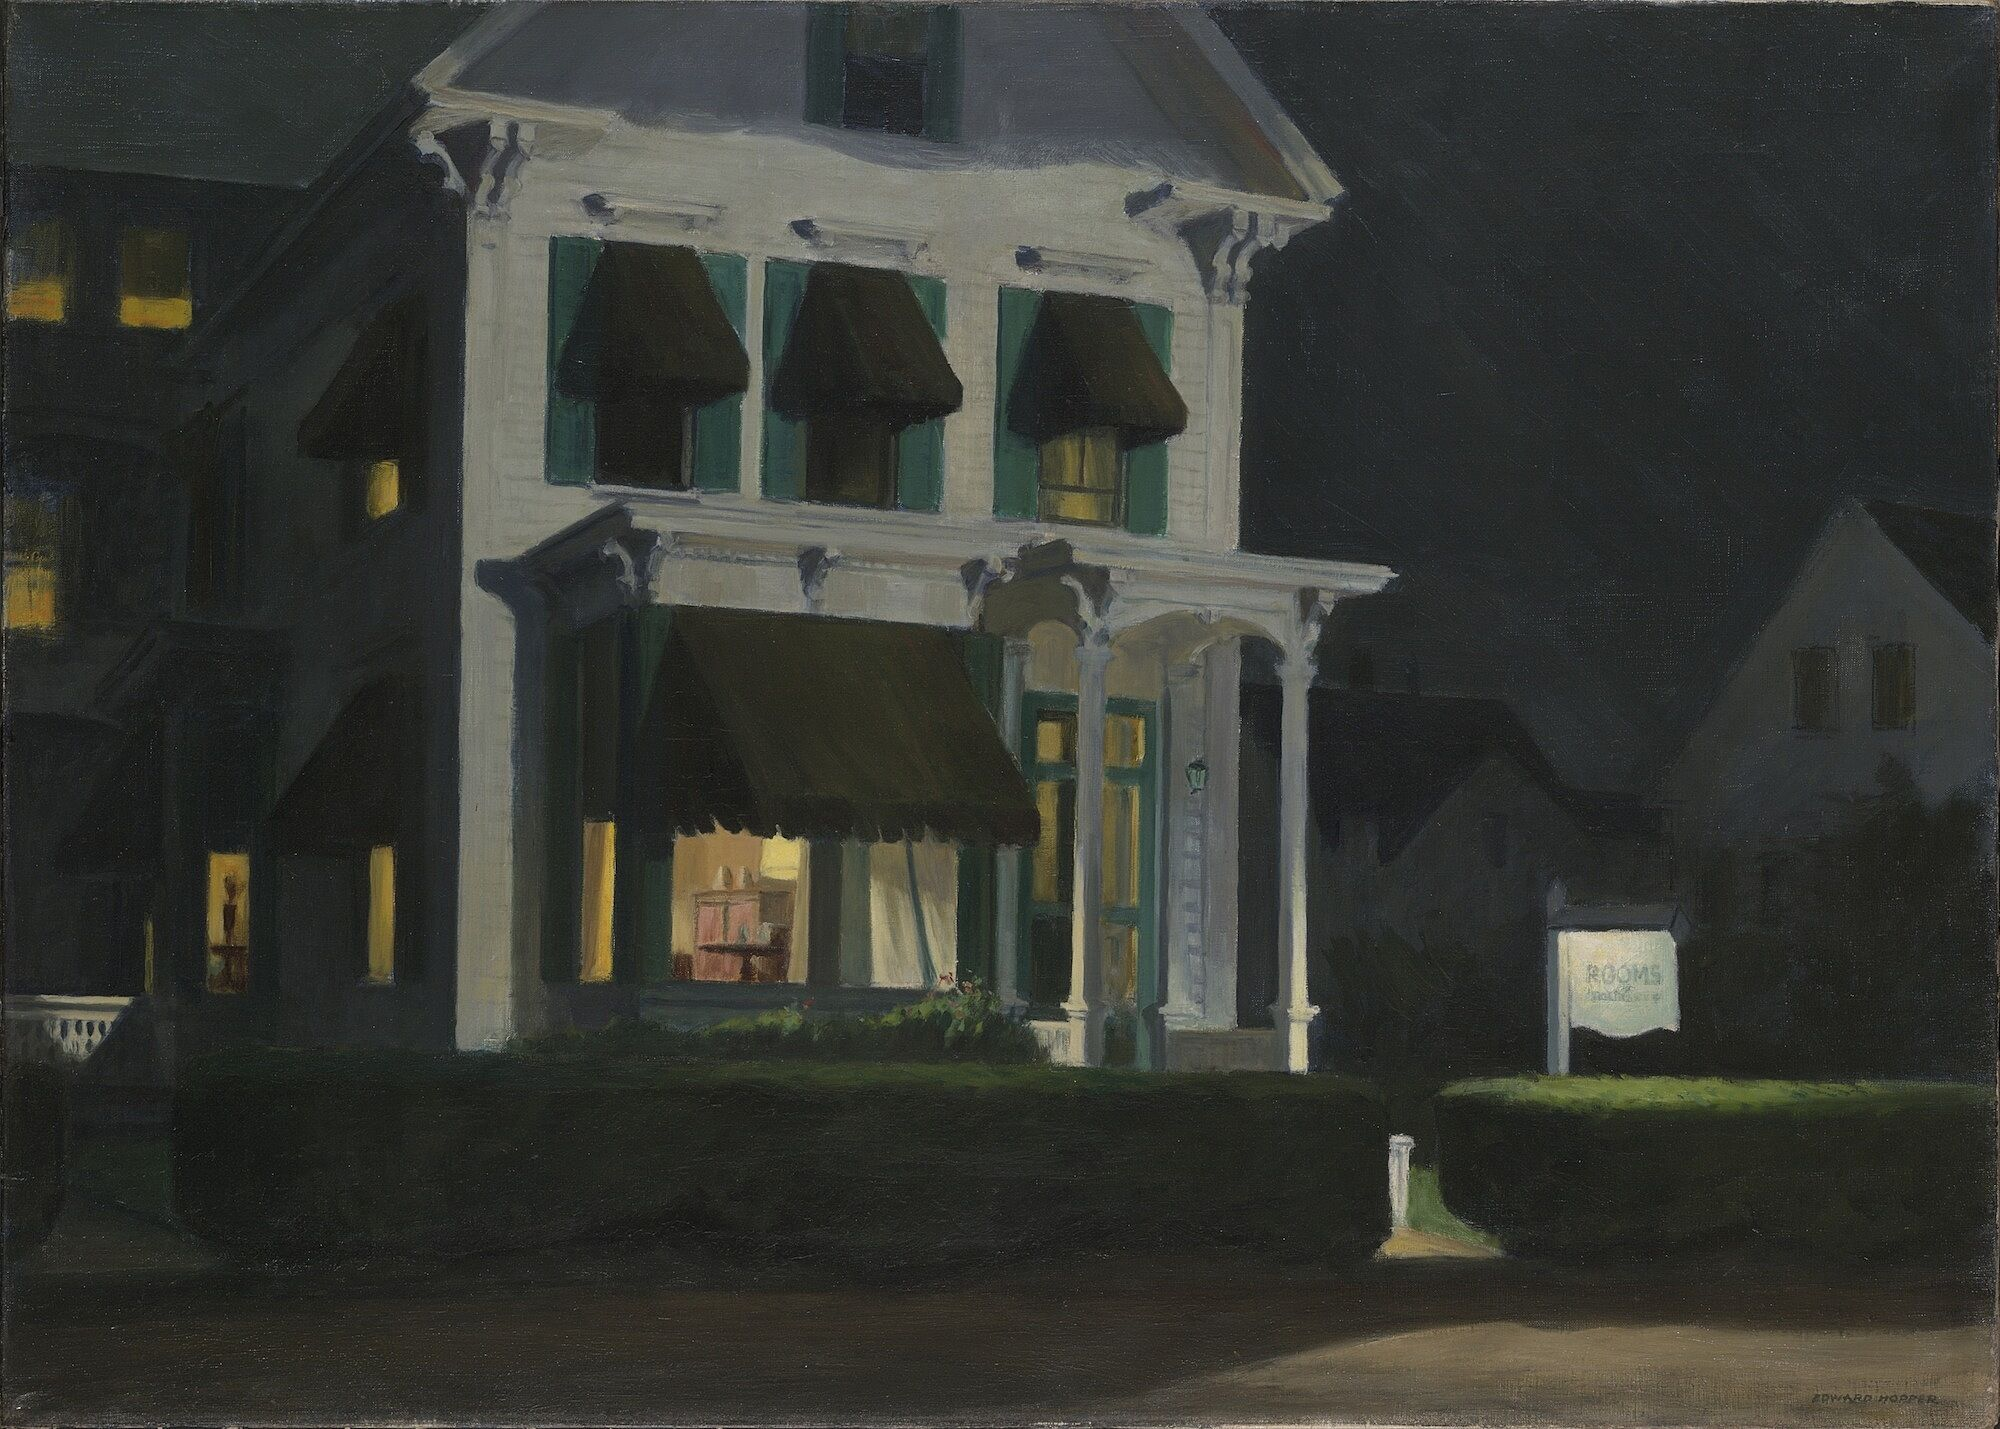 A painting of a house at night with the lights on inside.